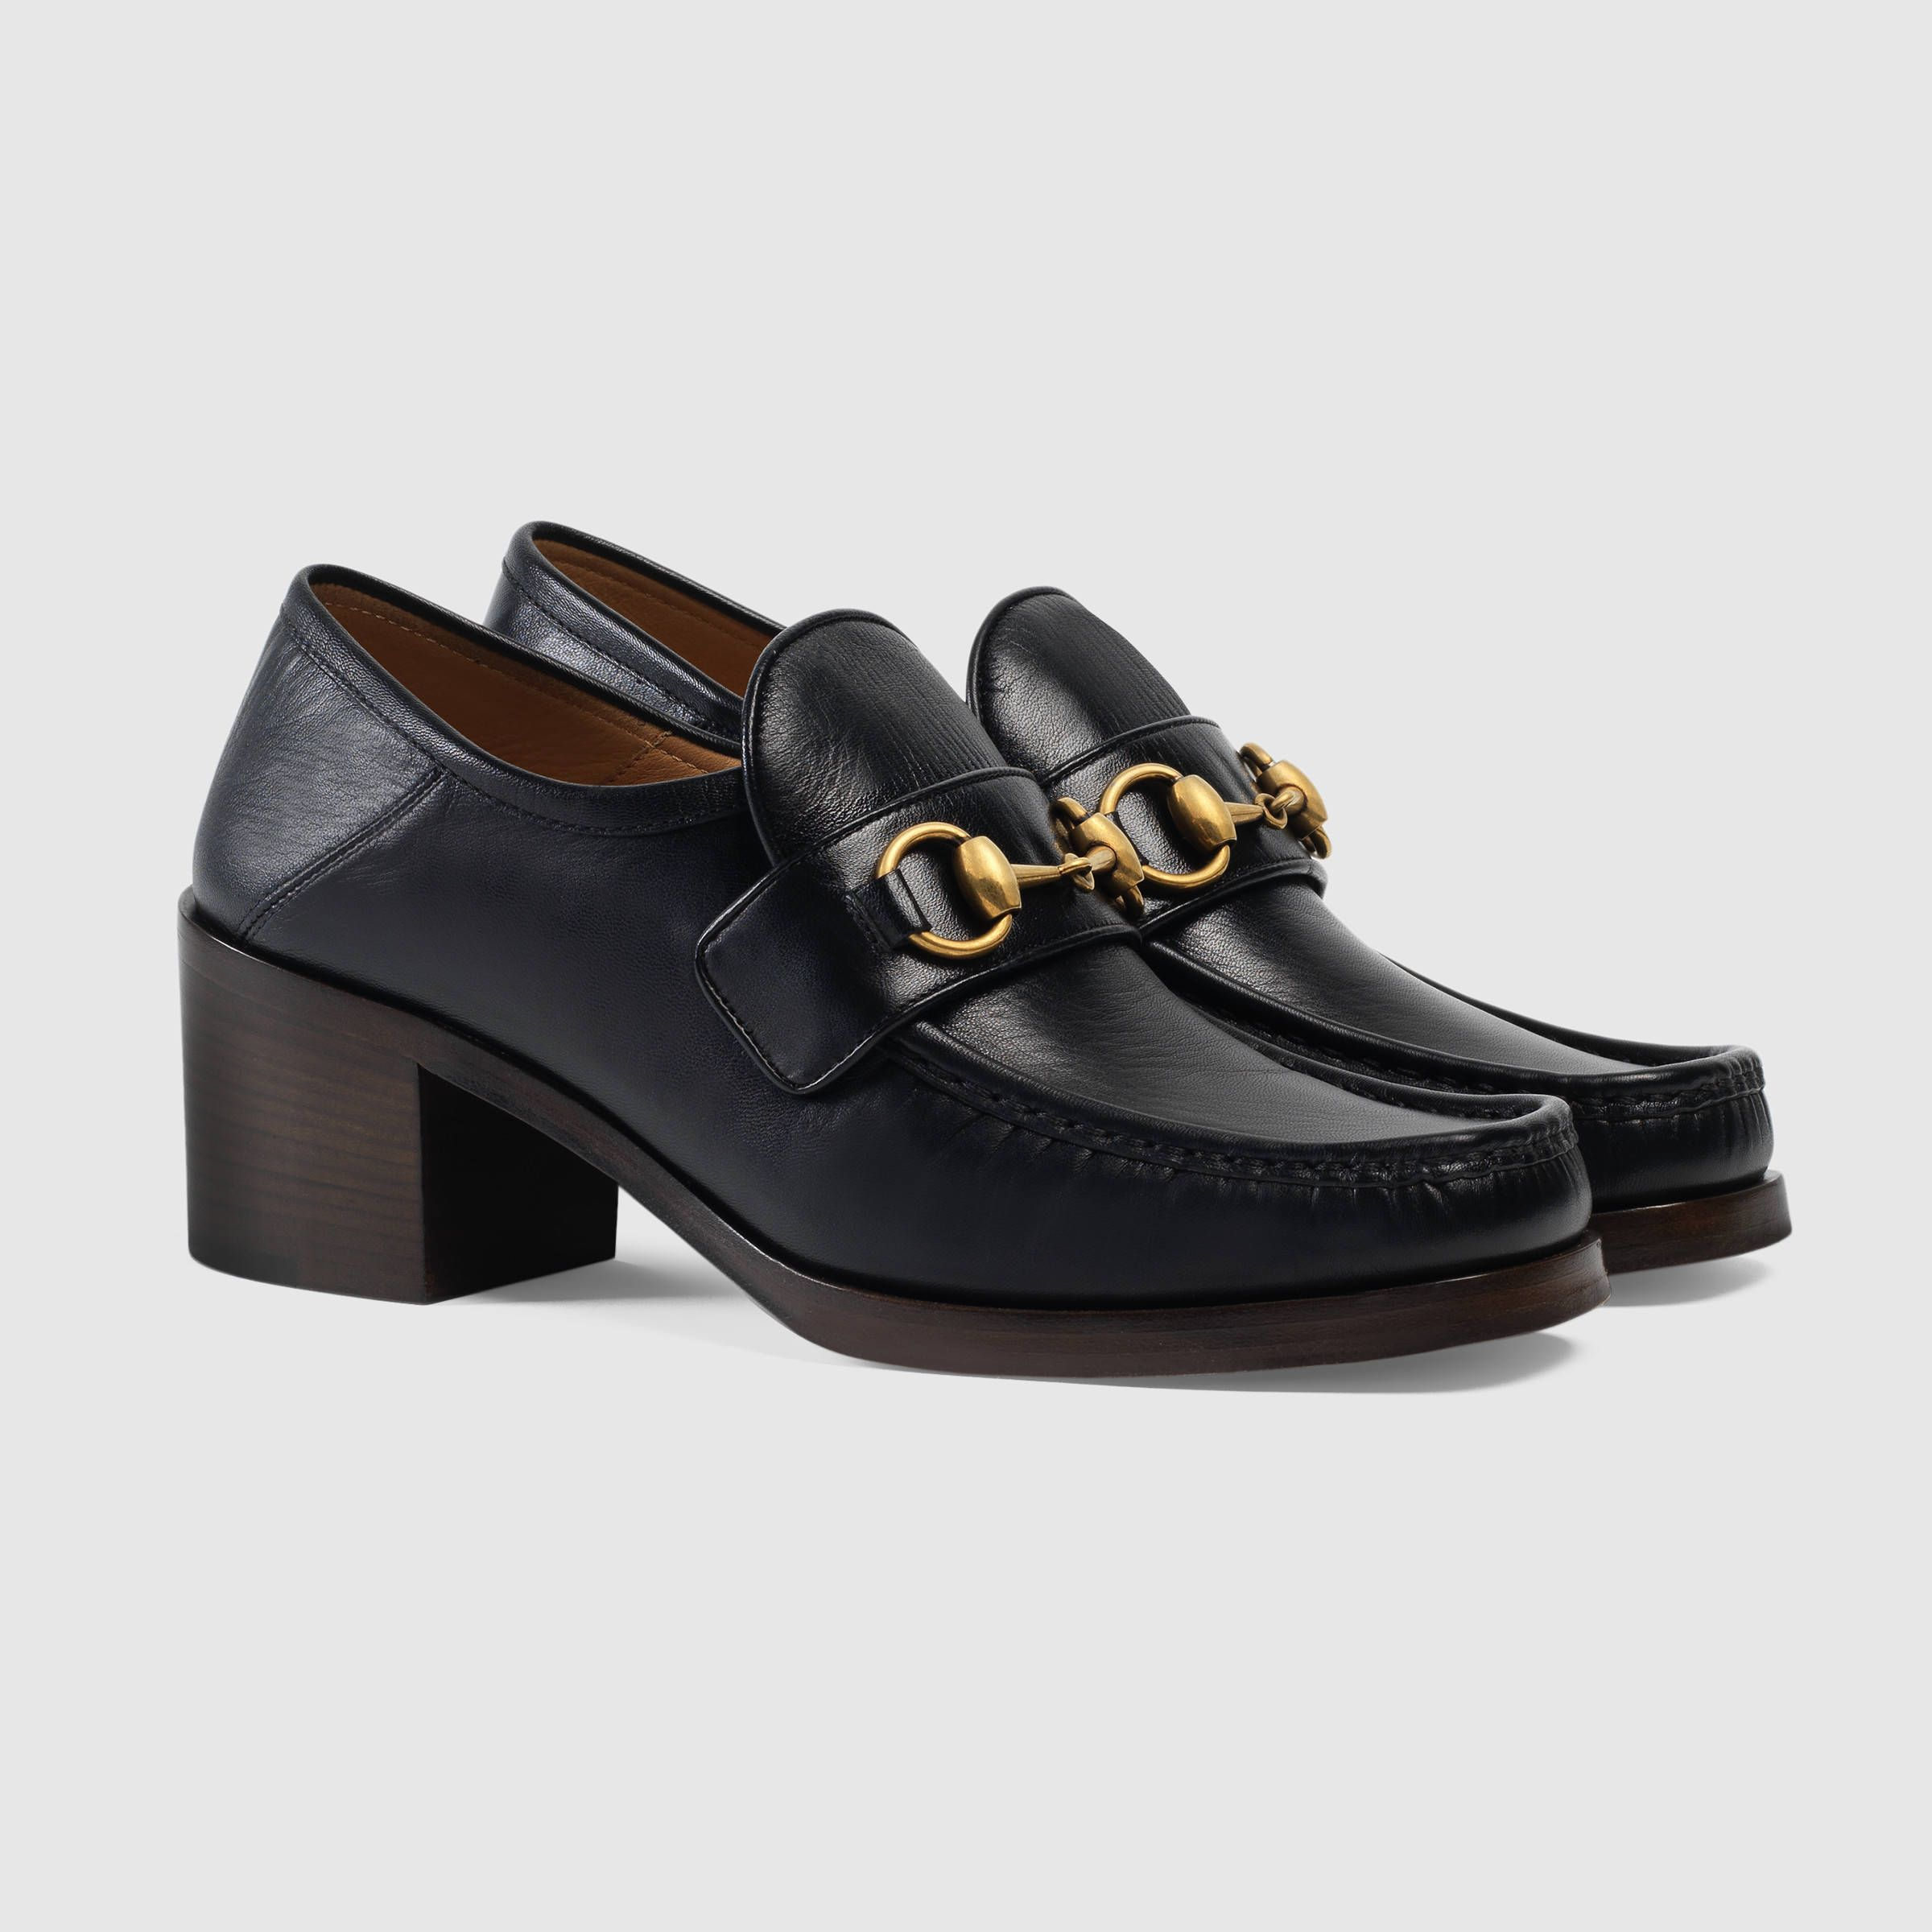 b21ee870ea0 Gucci Leather Horsebit loafers Detail 2